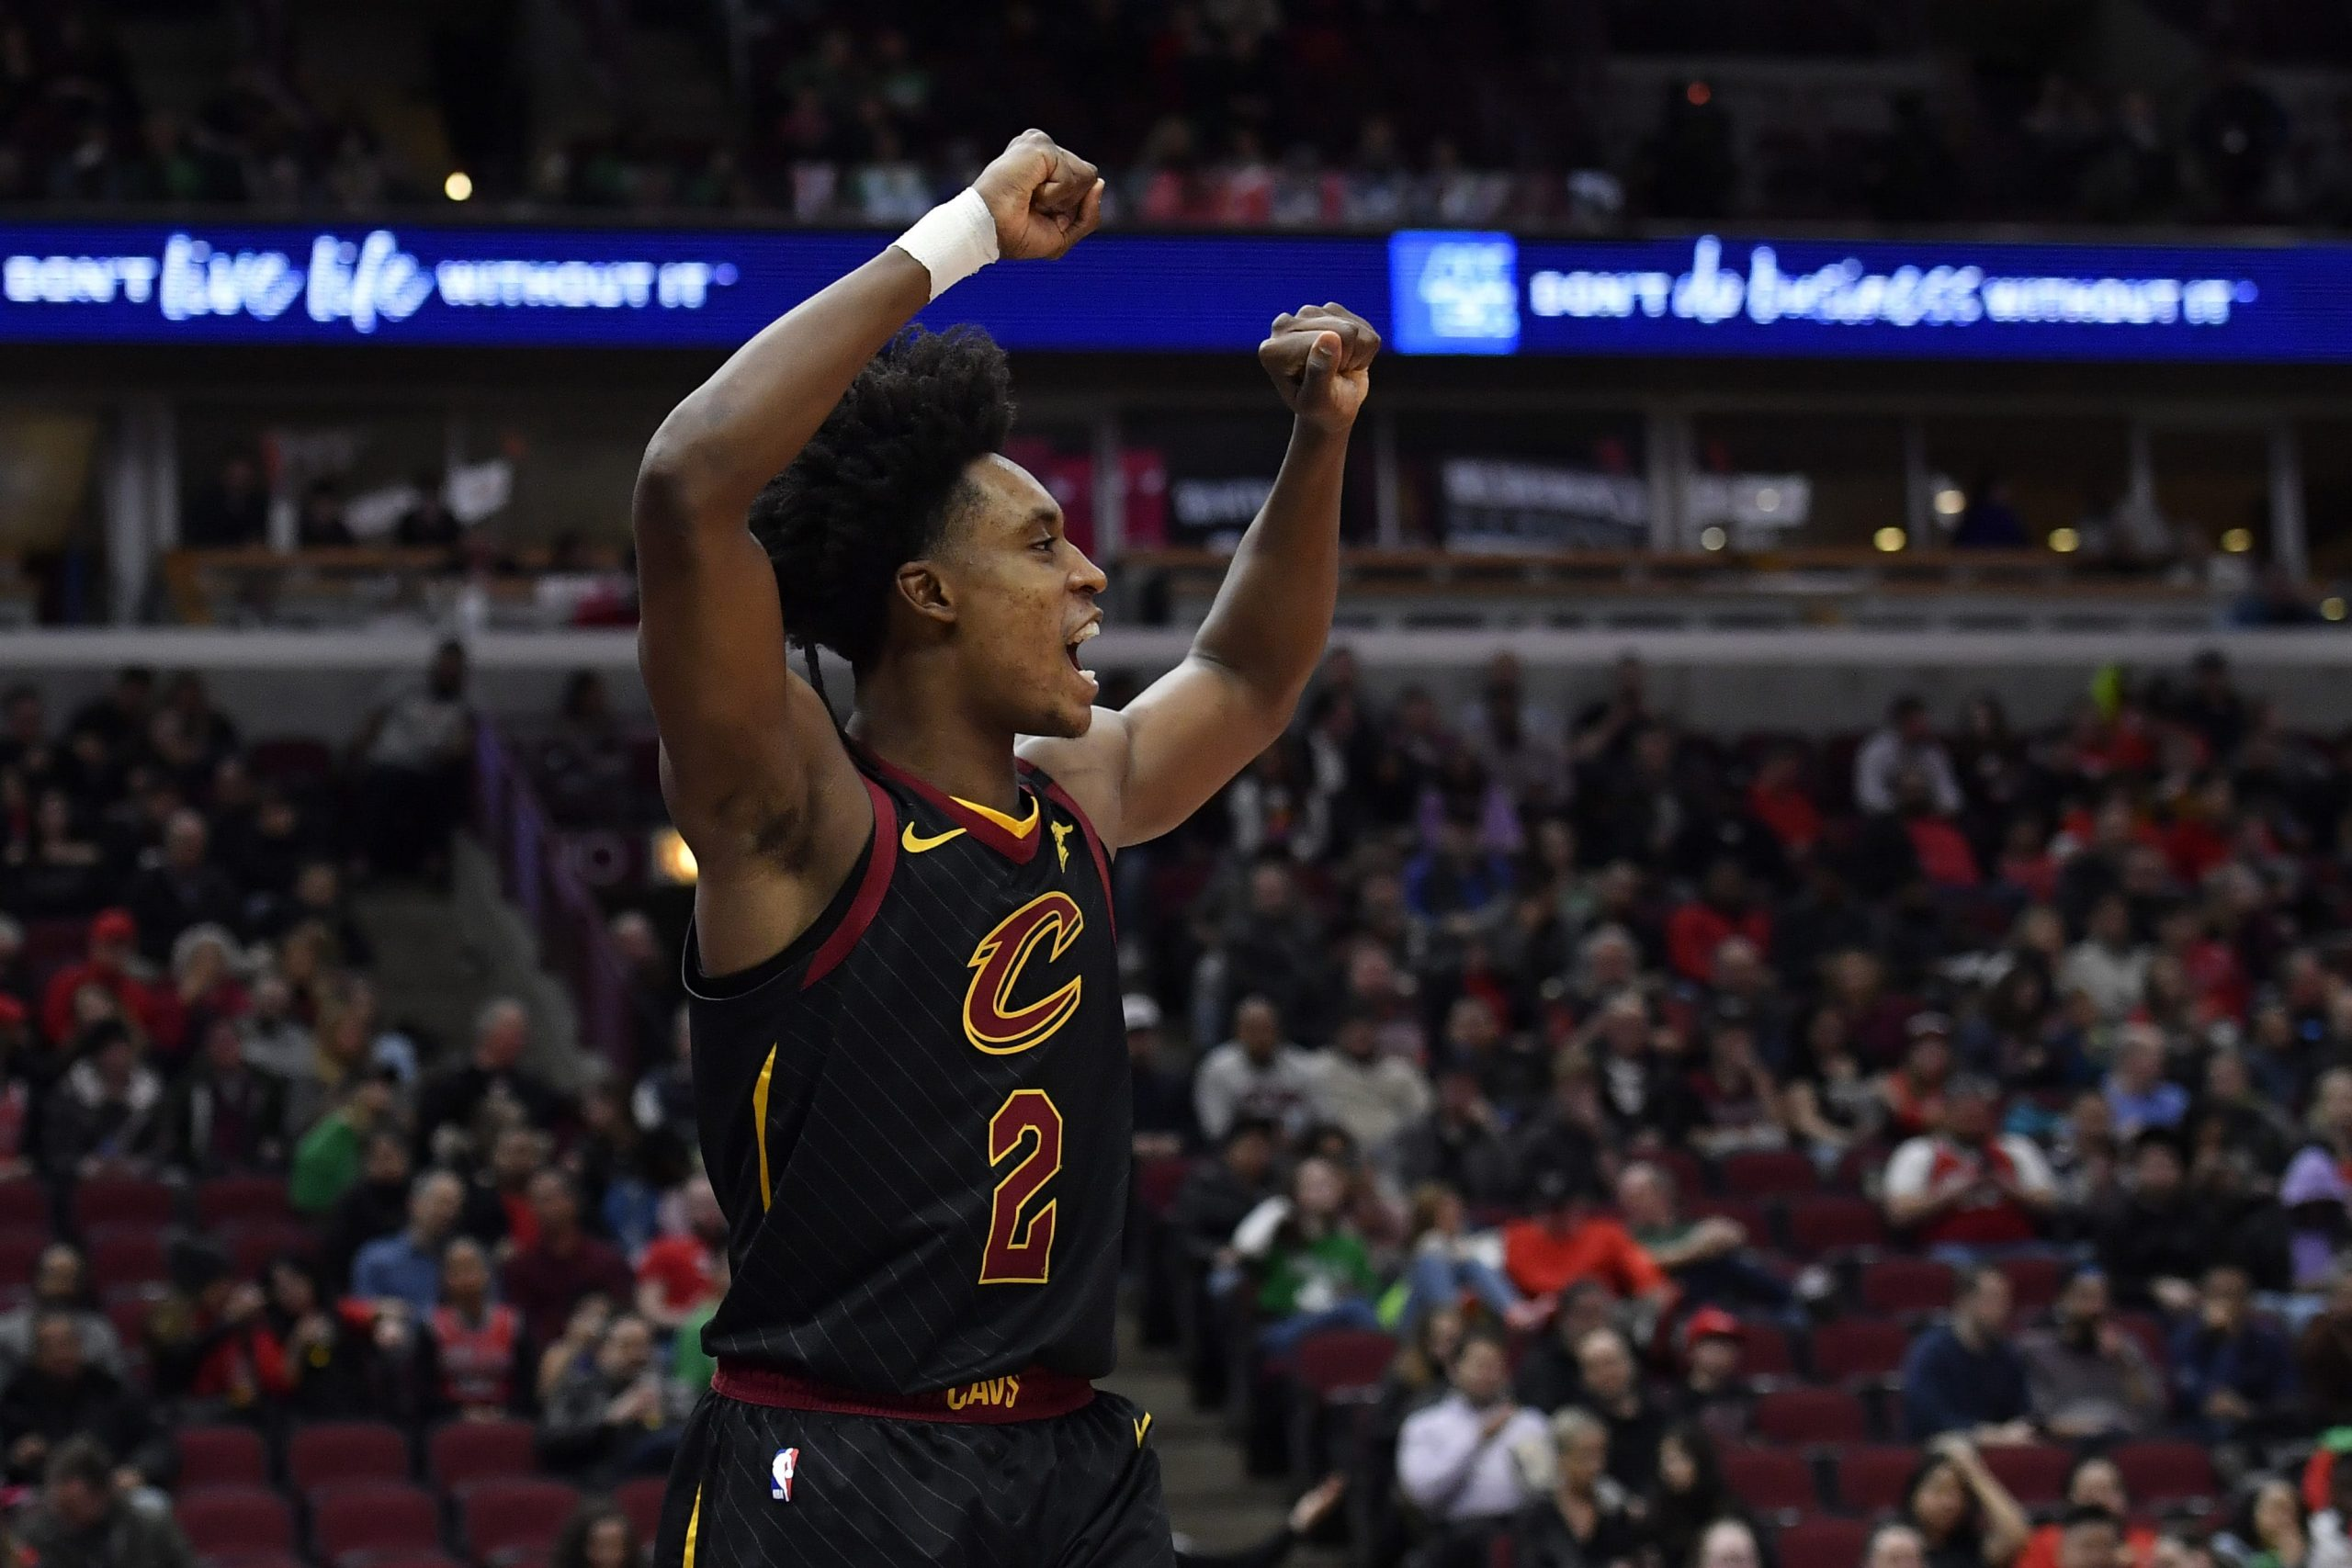 Cleveland Cavaliers guard Collin Sexton celebrates during game against Chicago Bulls